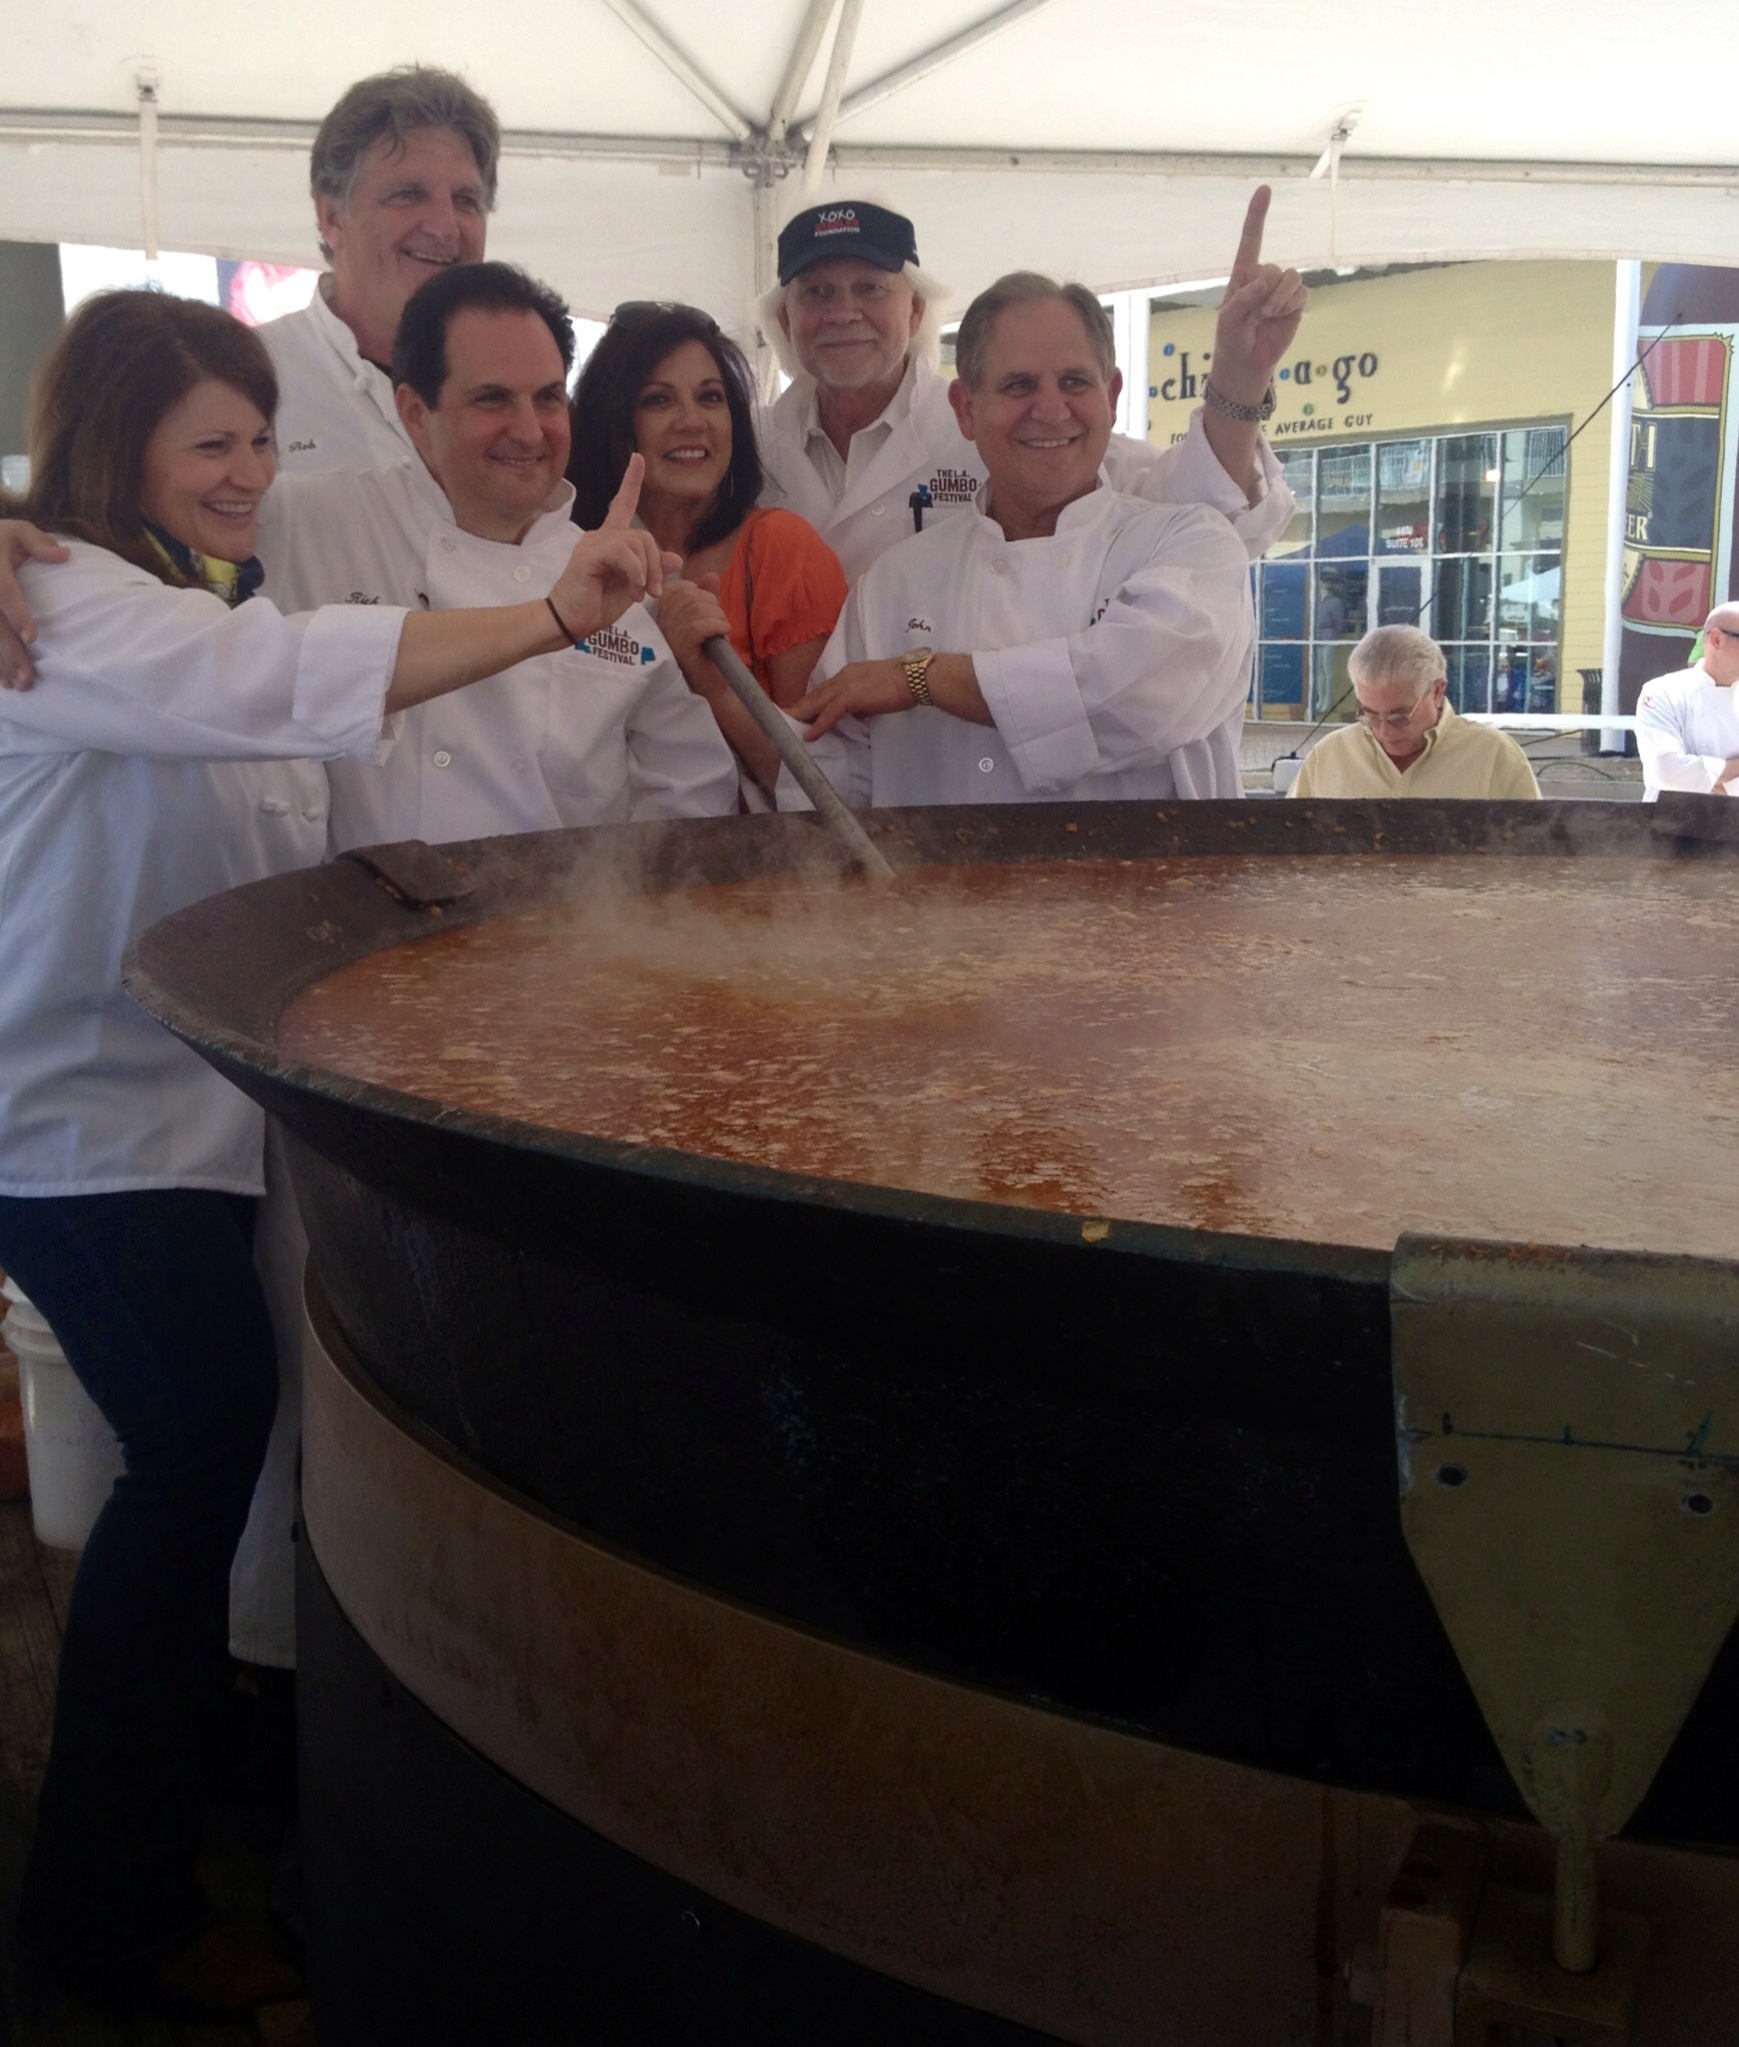 With John Folse making the world's largest pot of gumbo